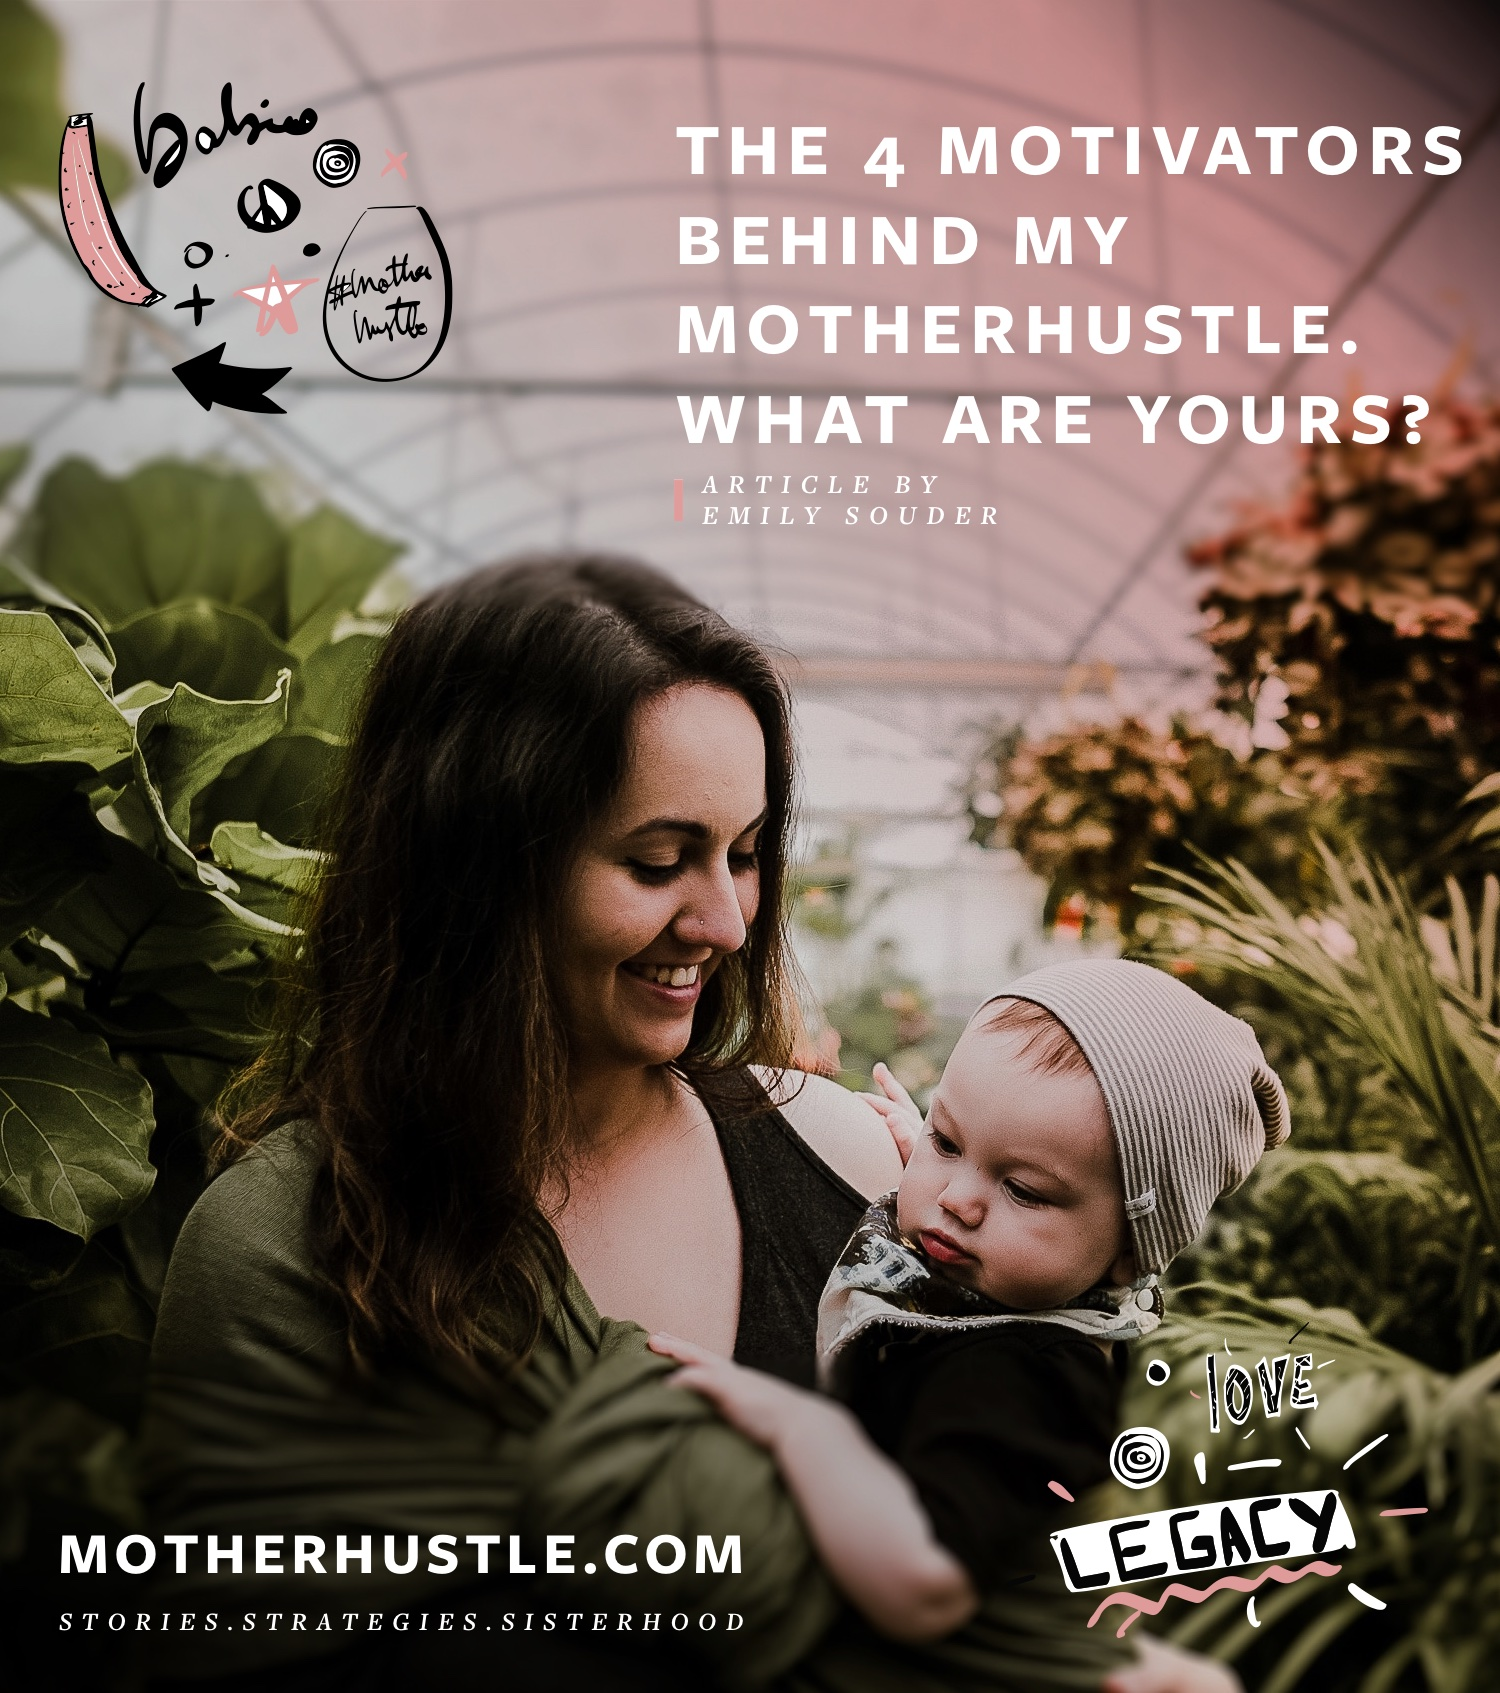 The 4 Motivators Behind MY MotherHustle. What Are Yours? - by Emily Souder for MotherHustle